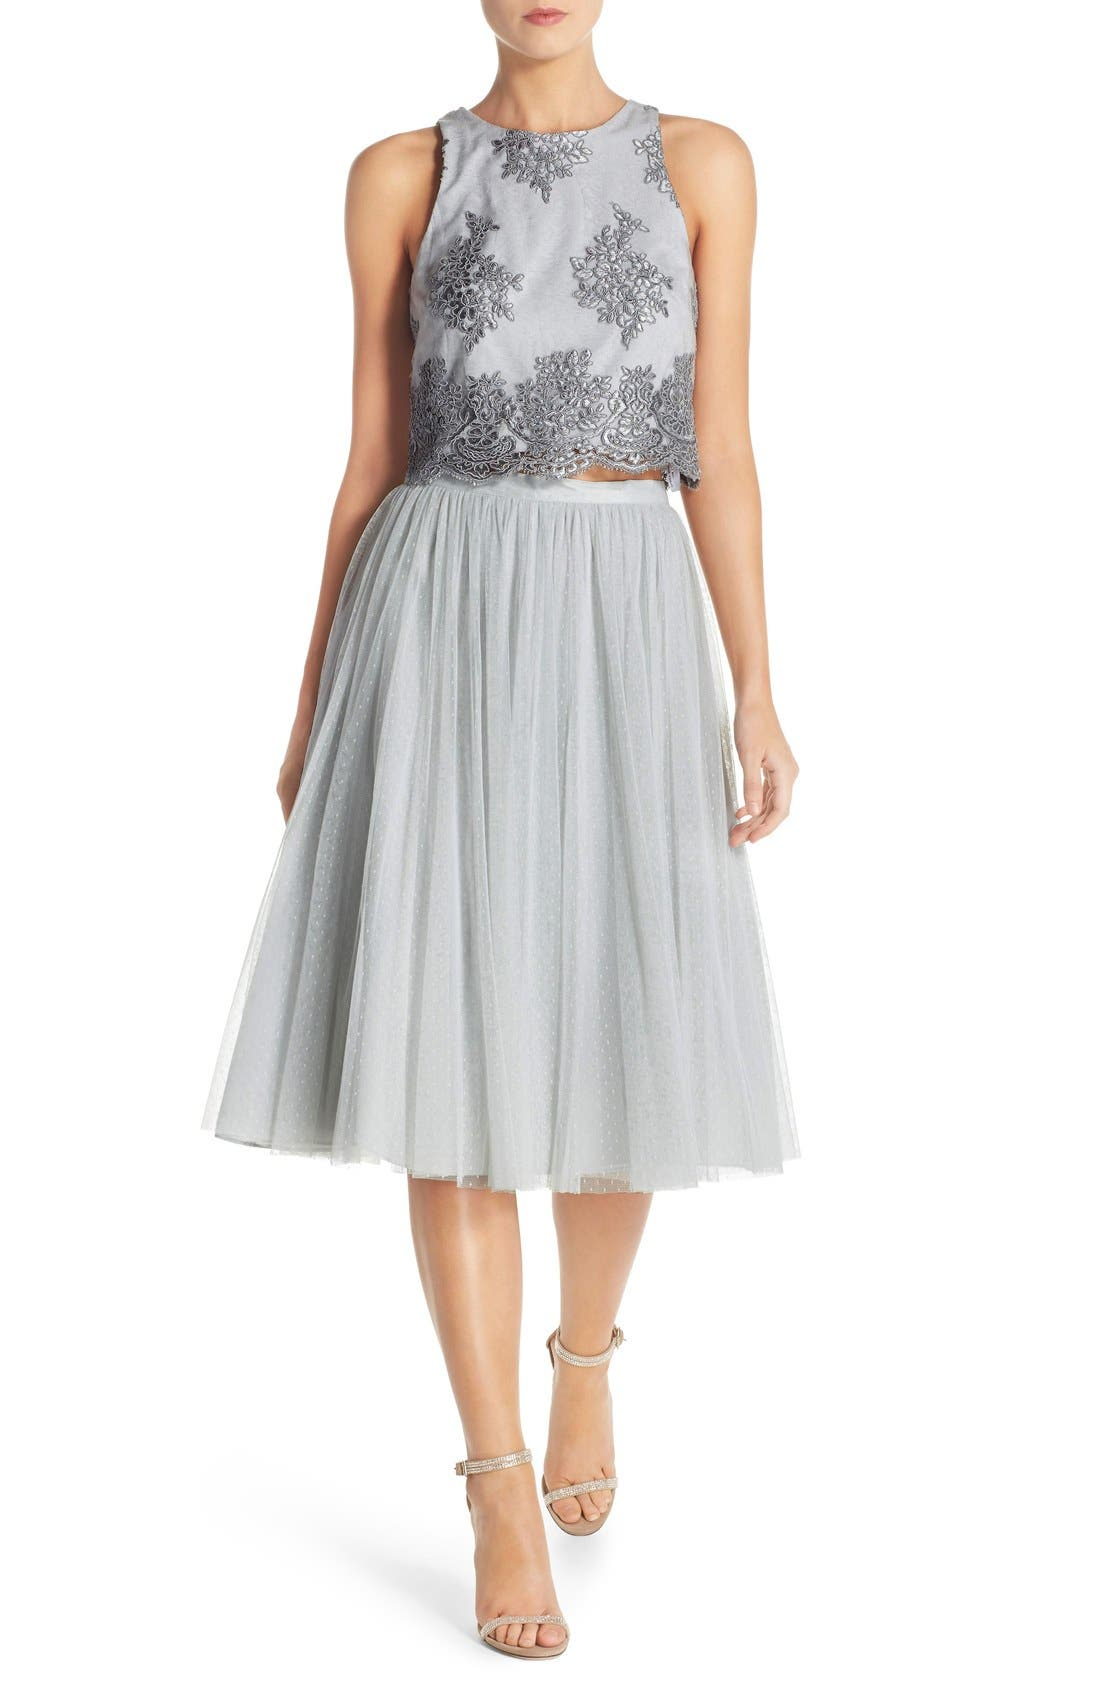 Main Image - Donna Morgan 'Beatrix' Lace & Dotted Tulle Two-Piece Dress